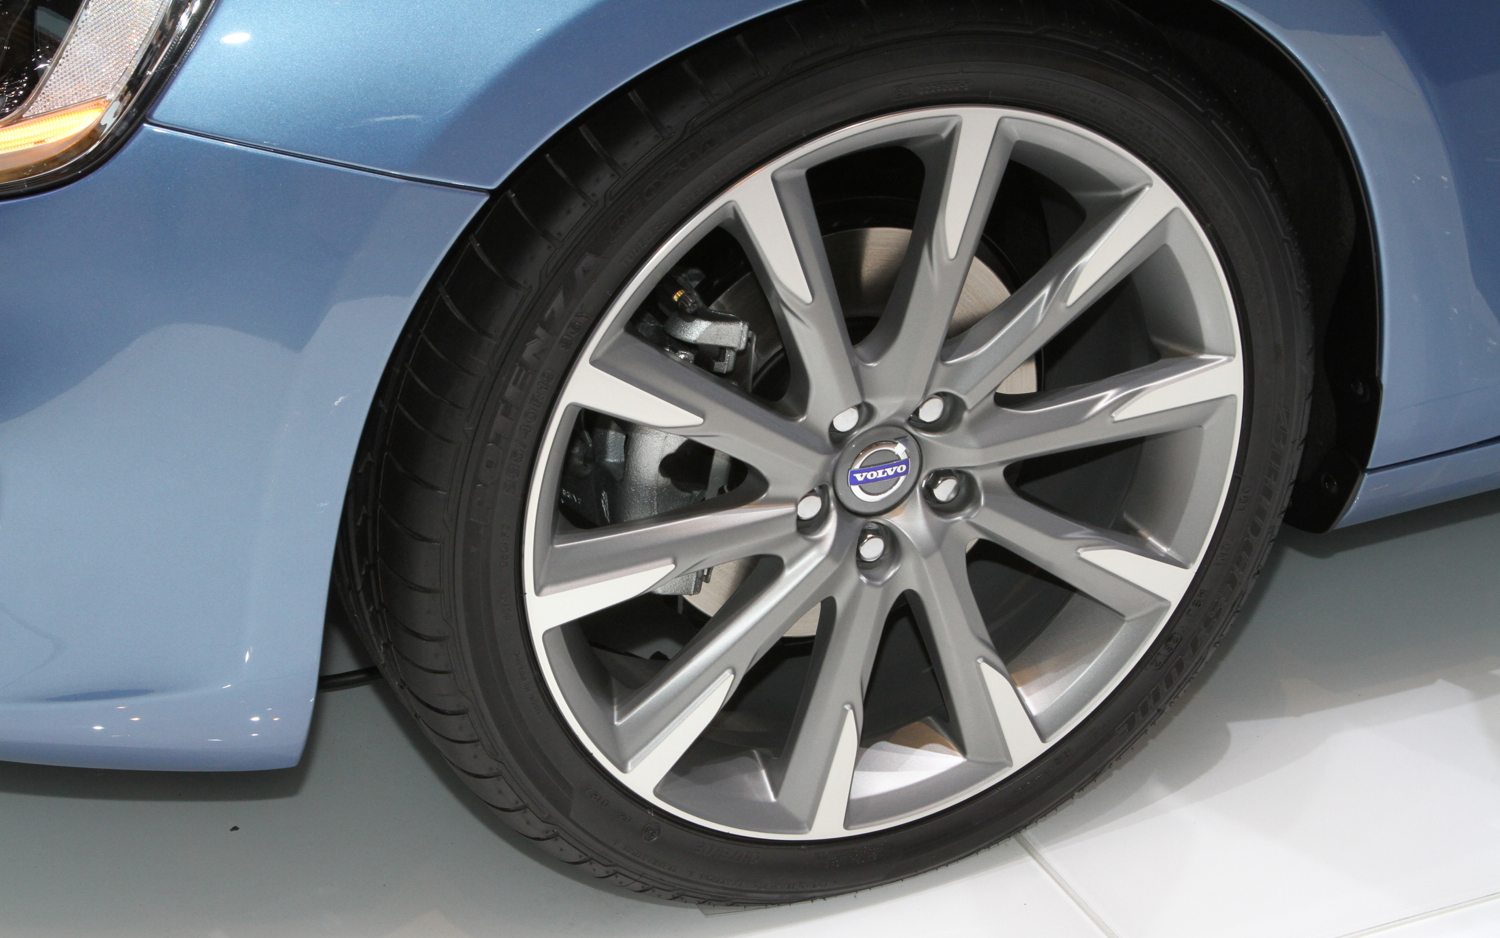 Volvo S60 wheels #2